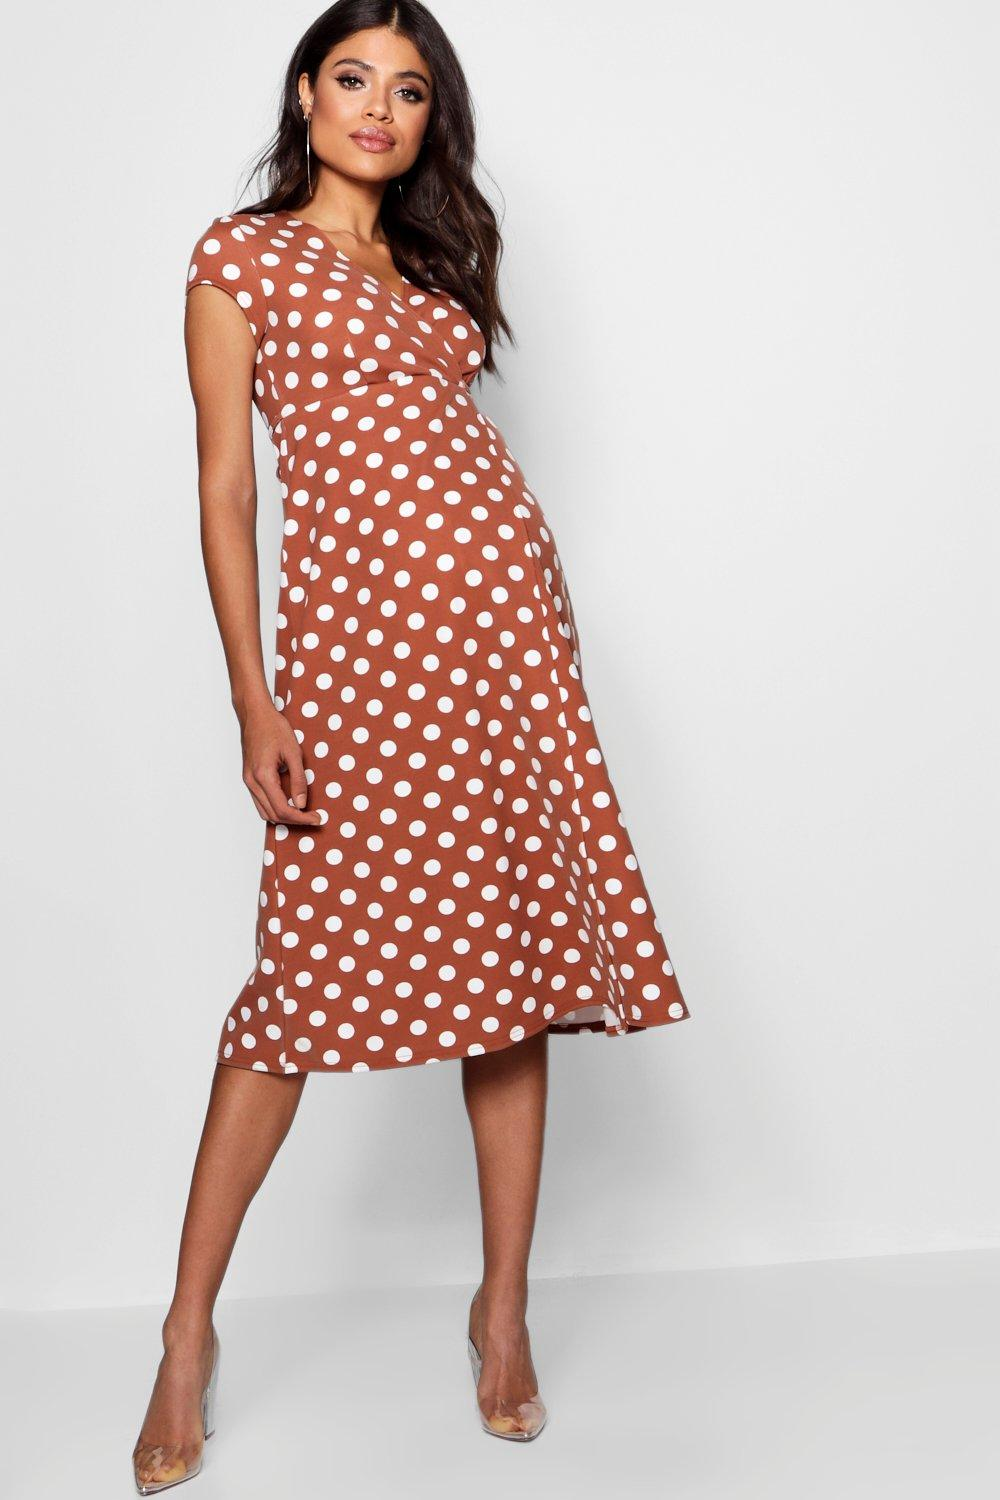 Vintage Maternity Clothes History Womens Maternity Polka Dot Wrap Dress - orange - 16 $27.00 AT vintagedancer.com